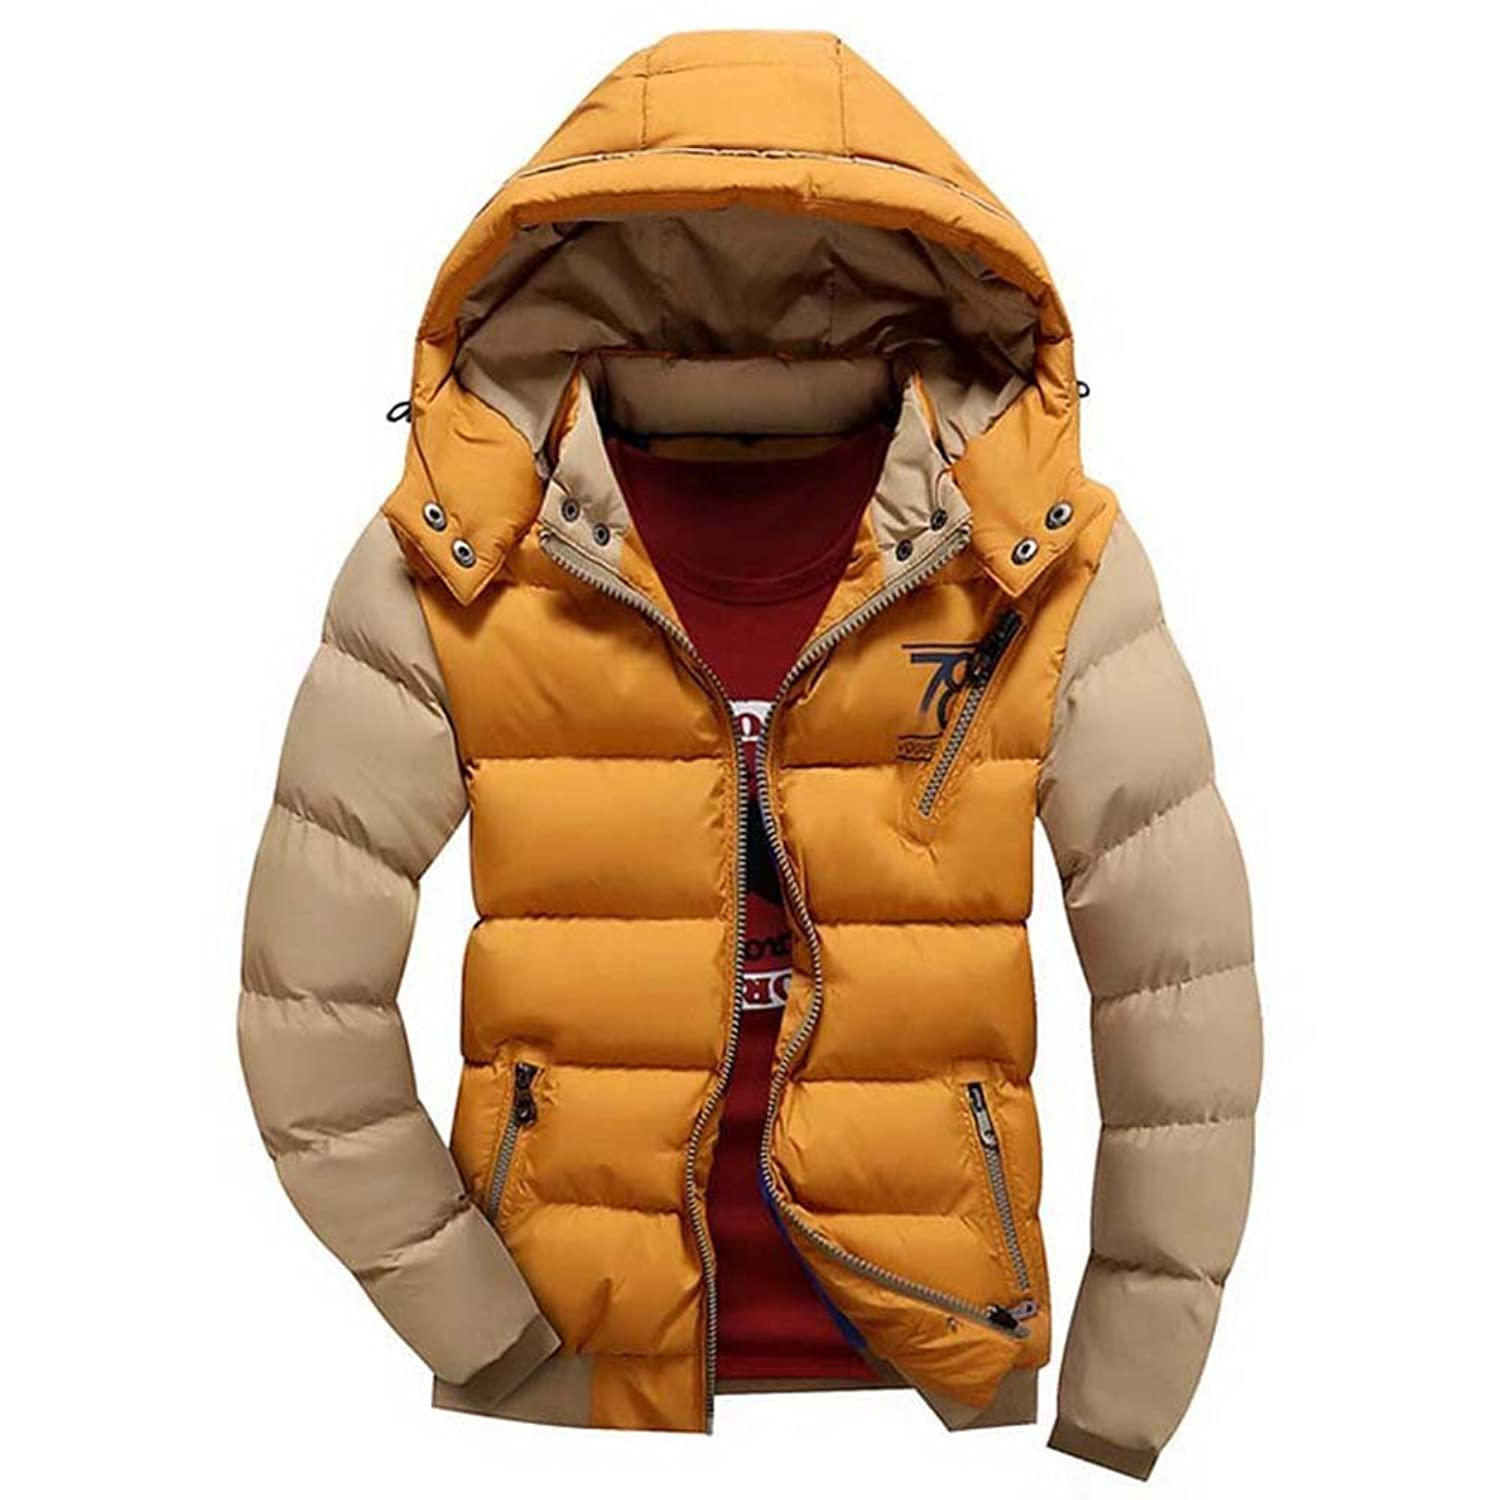 hibote Men Parkas Slim S Thick Clothes Hooded Outwear Jacket Warm Coat Dark Yellow 3XL